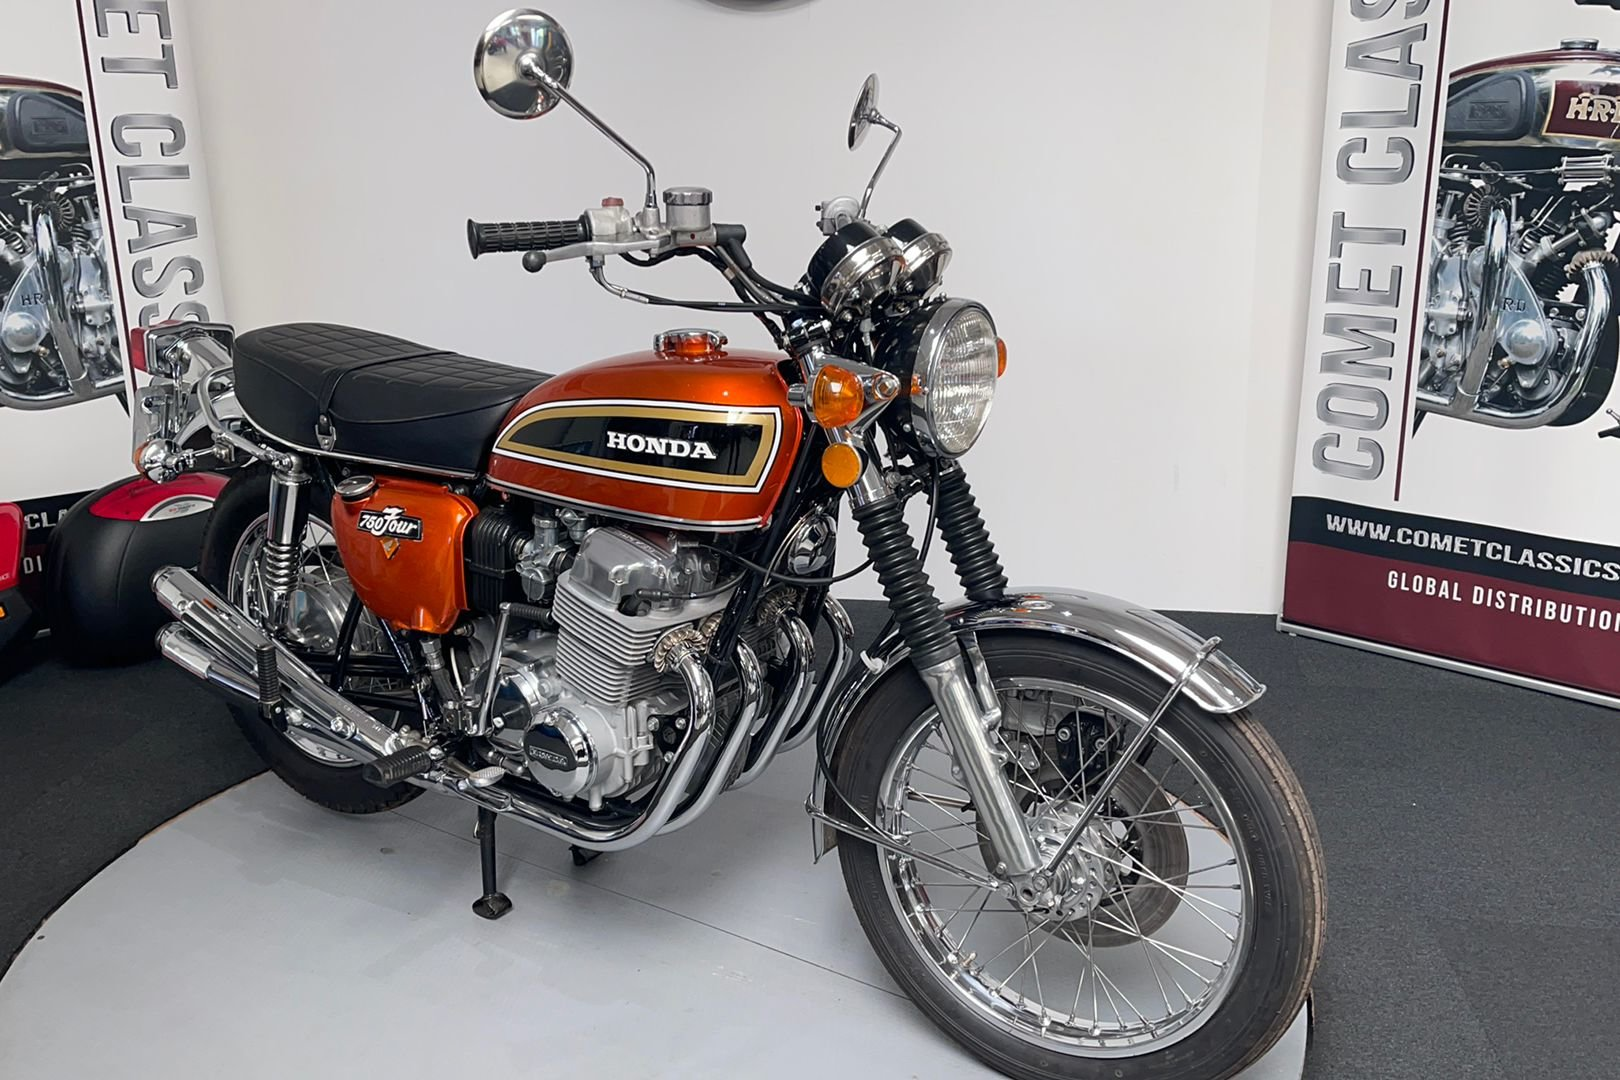 Honda 7504 1973 For Sale (picture 3 of 10)